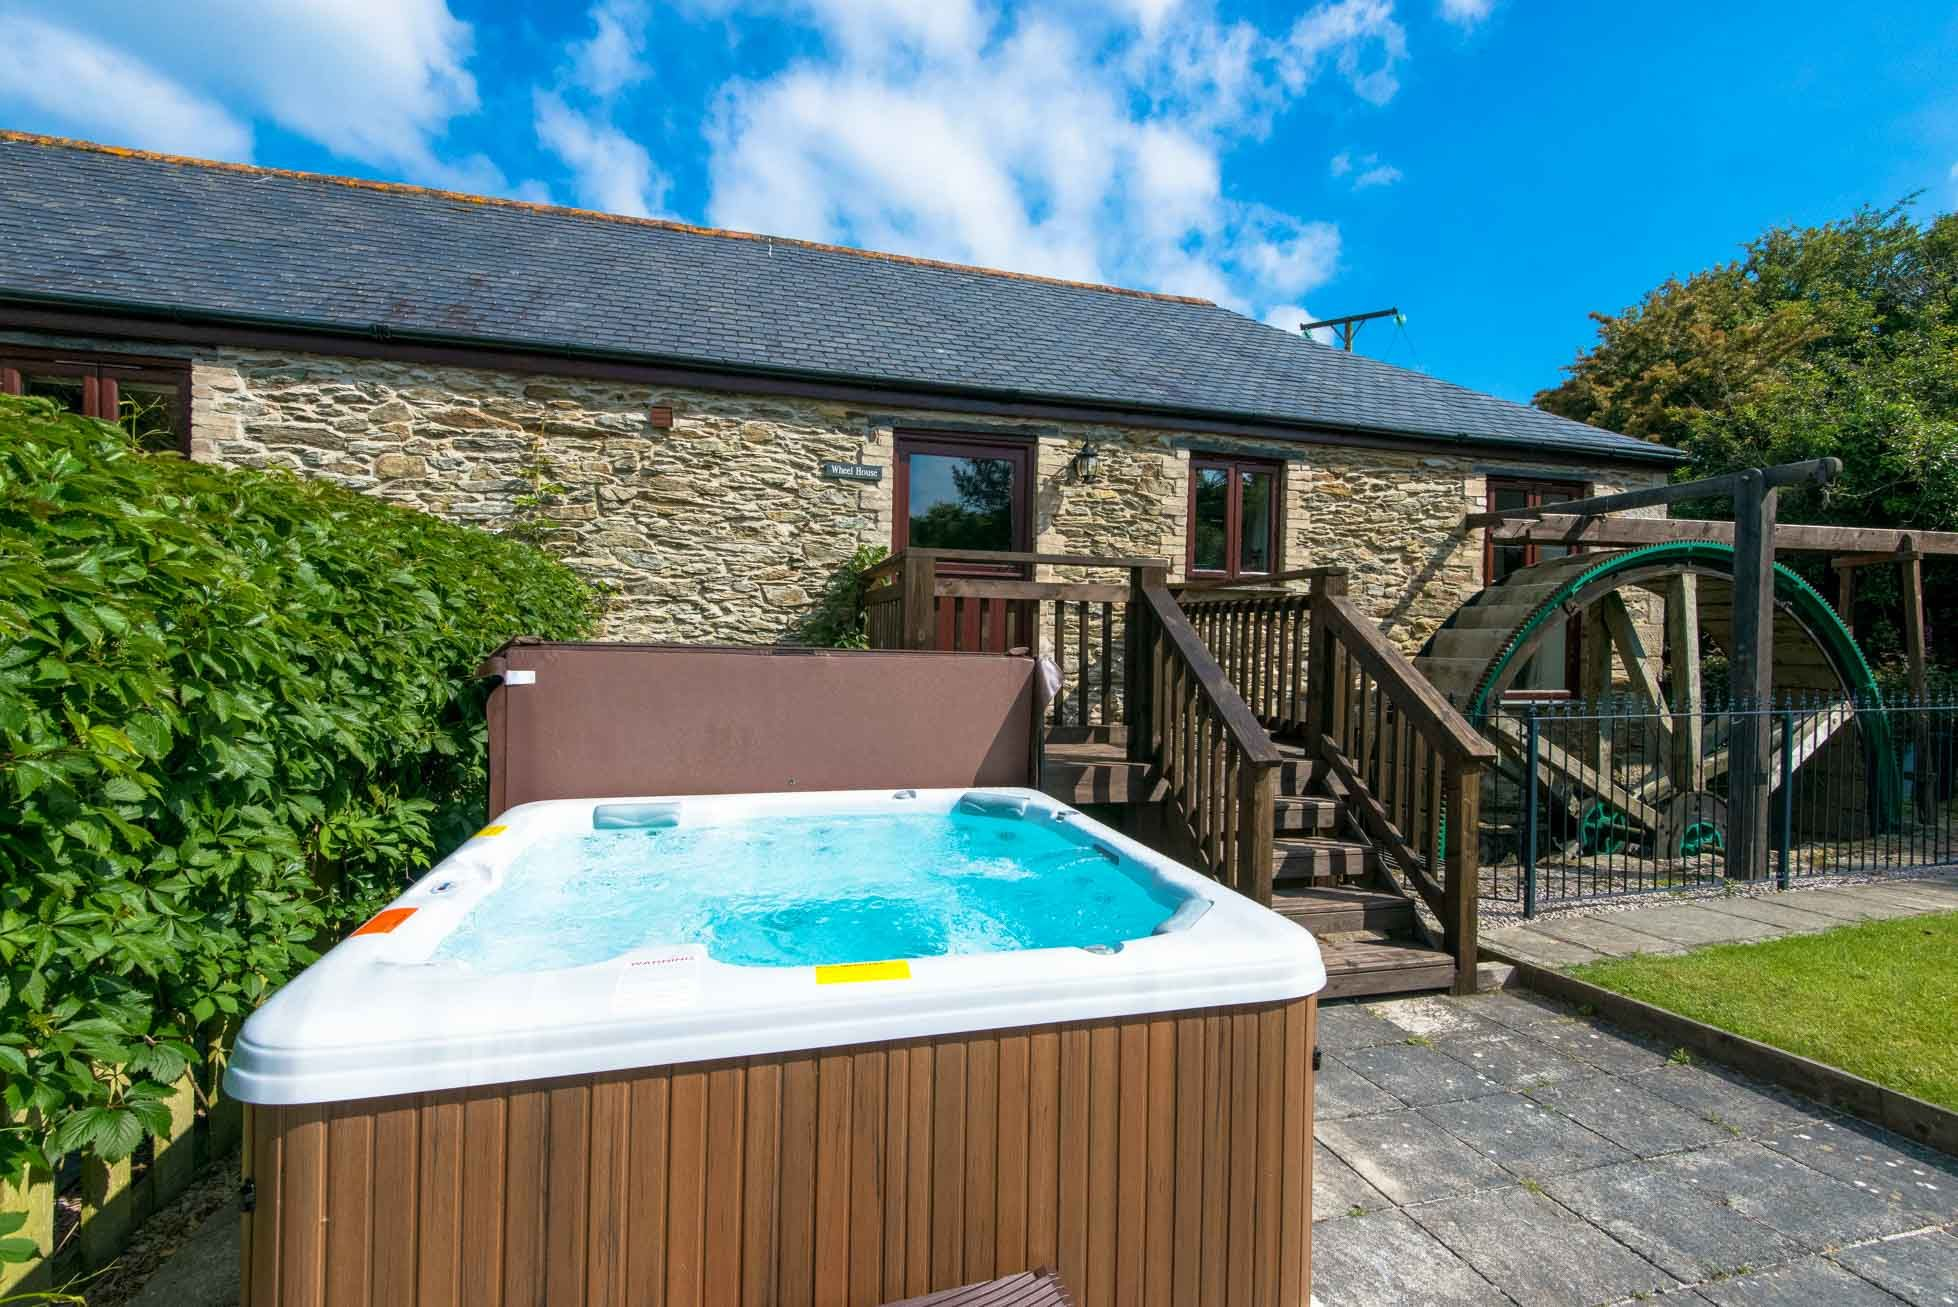 Cornwall holiday cottages mitchell near newquay wheel for Custom cottage fish house prices